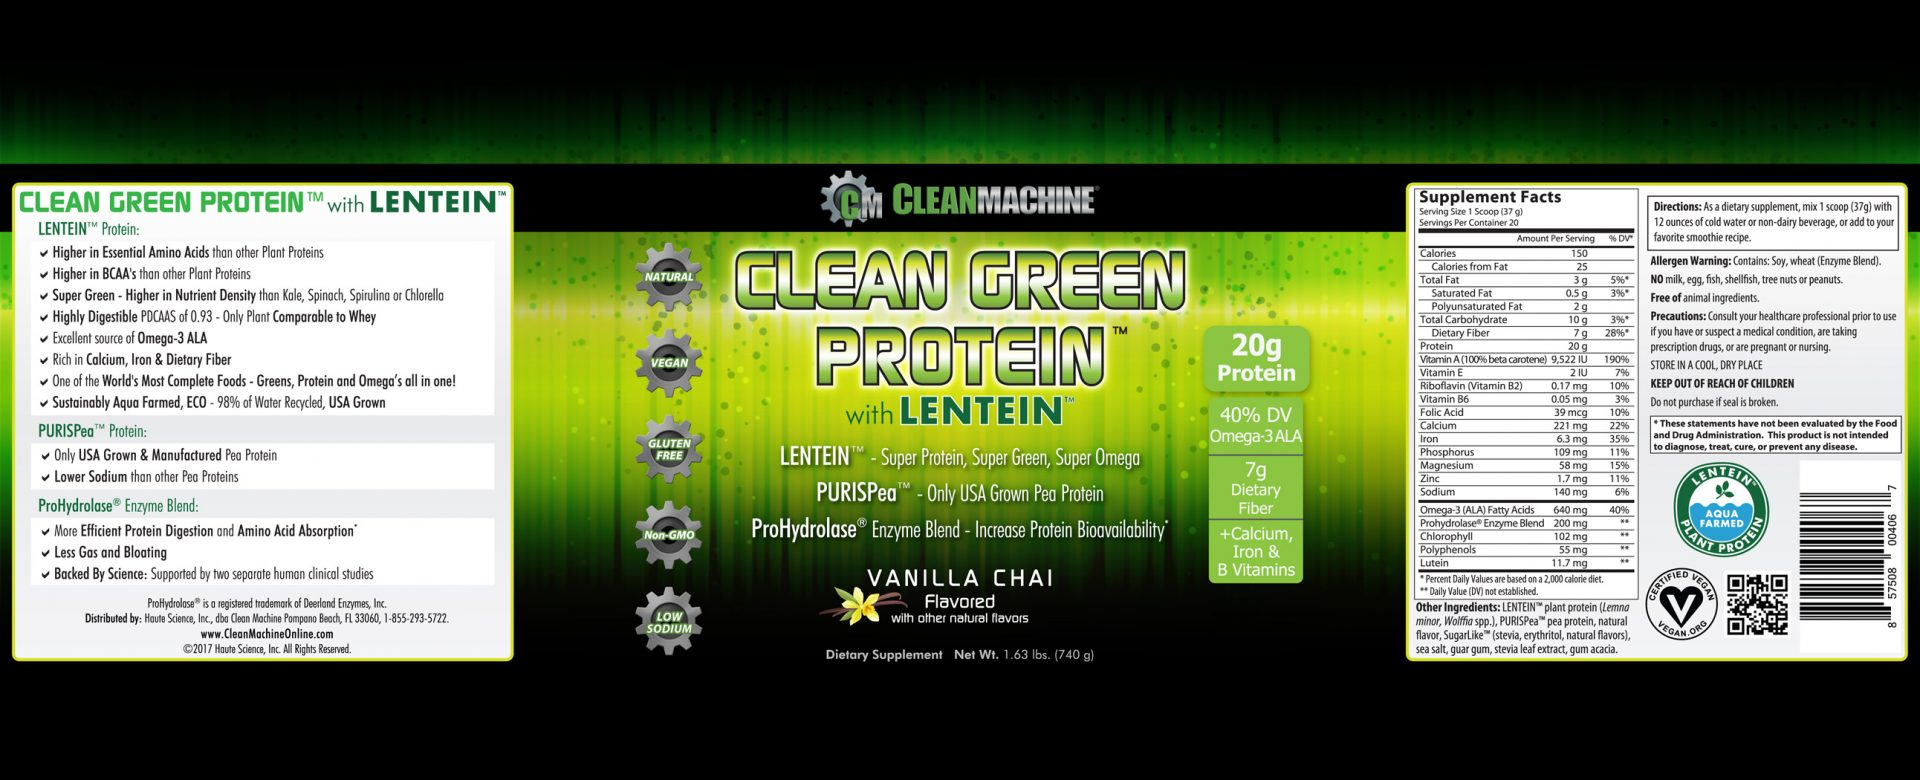 It is a graphic of Adorable Clean Label Project Vegan Protein